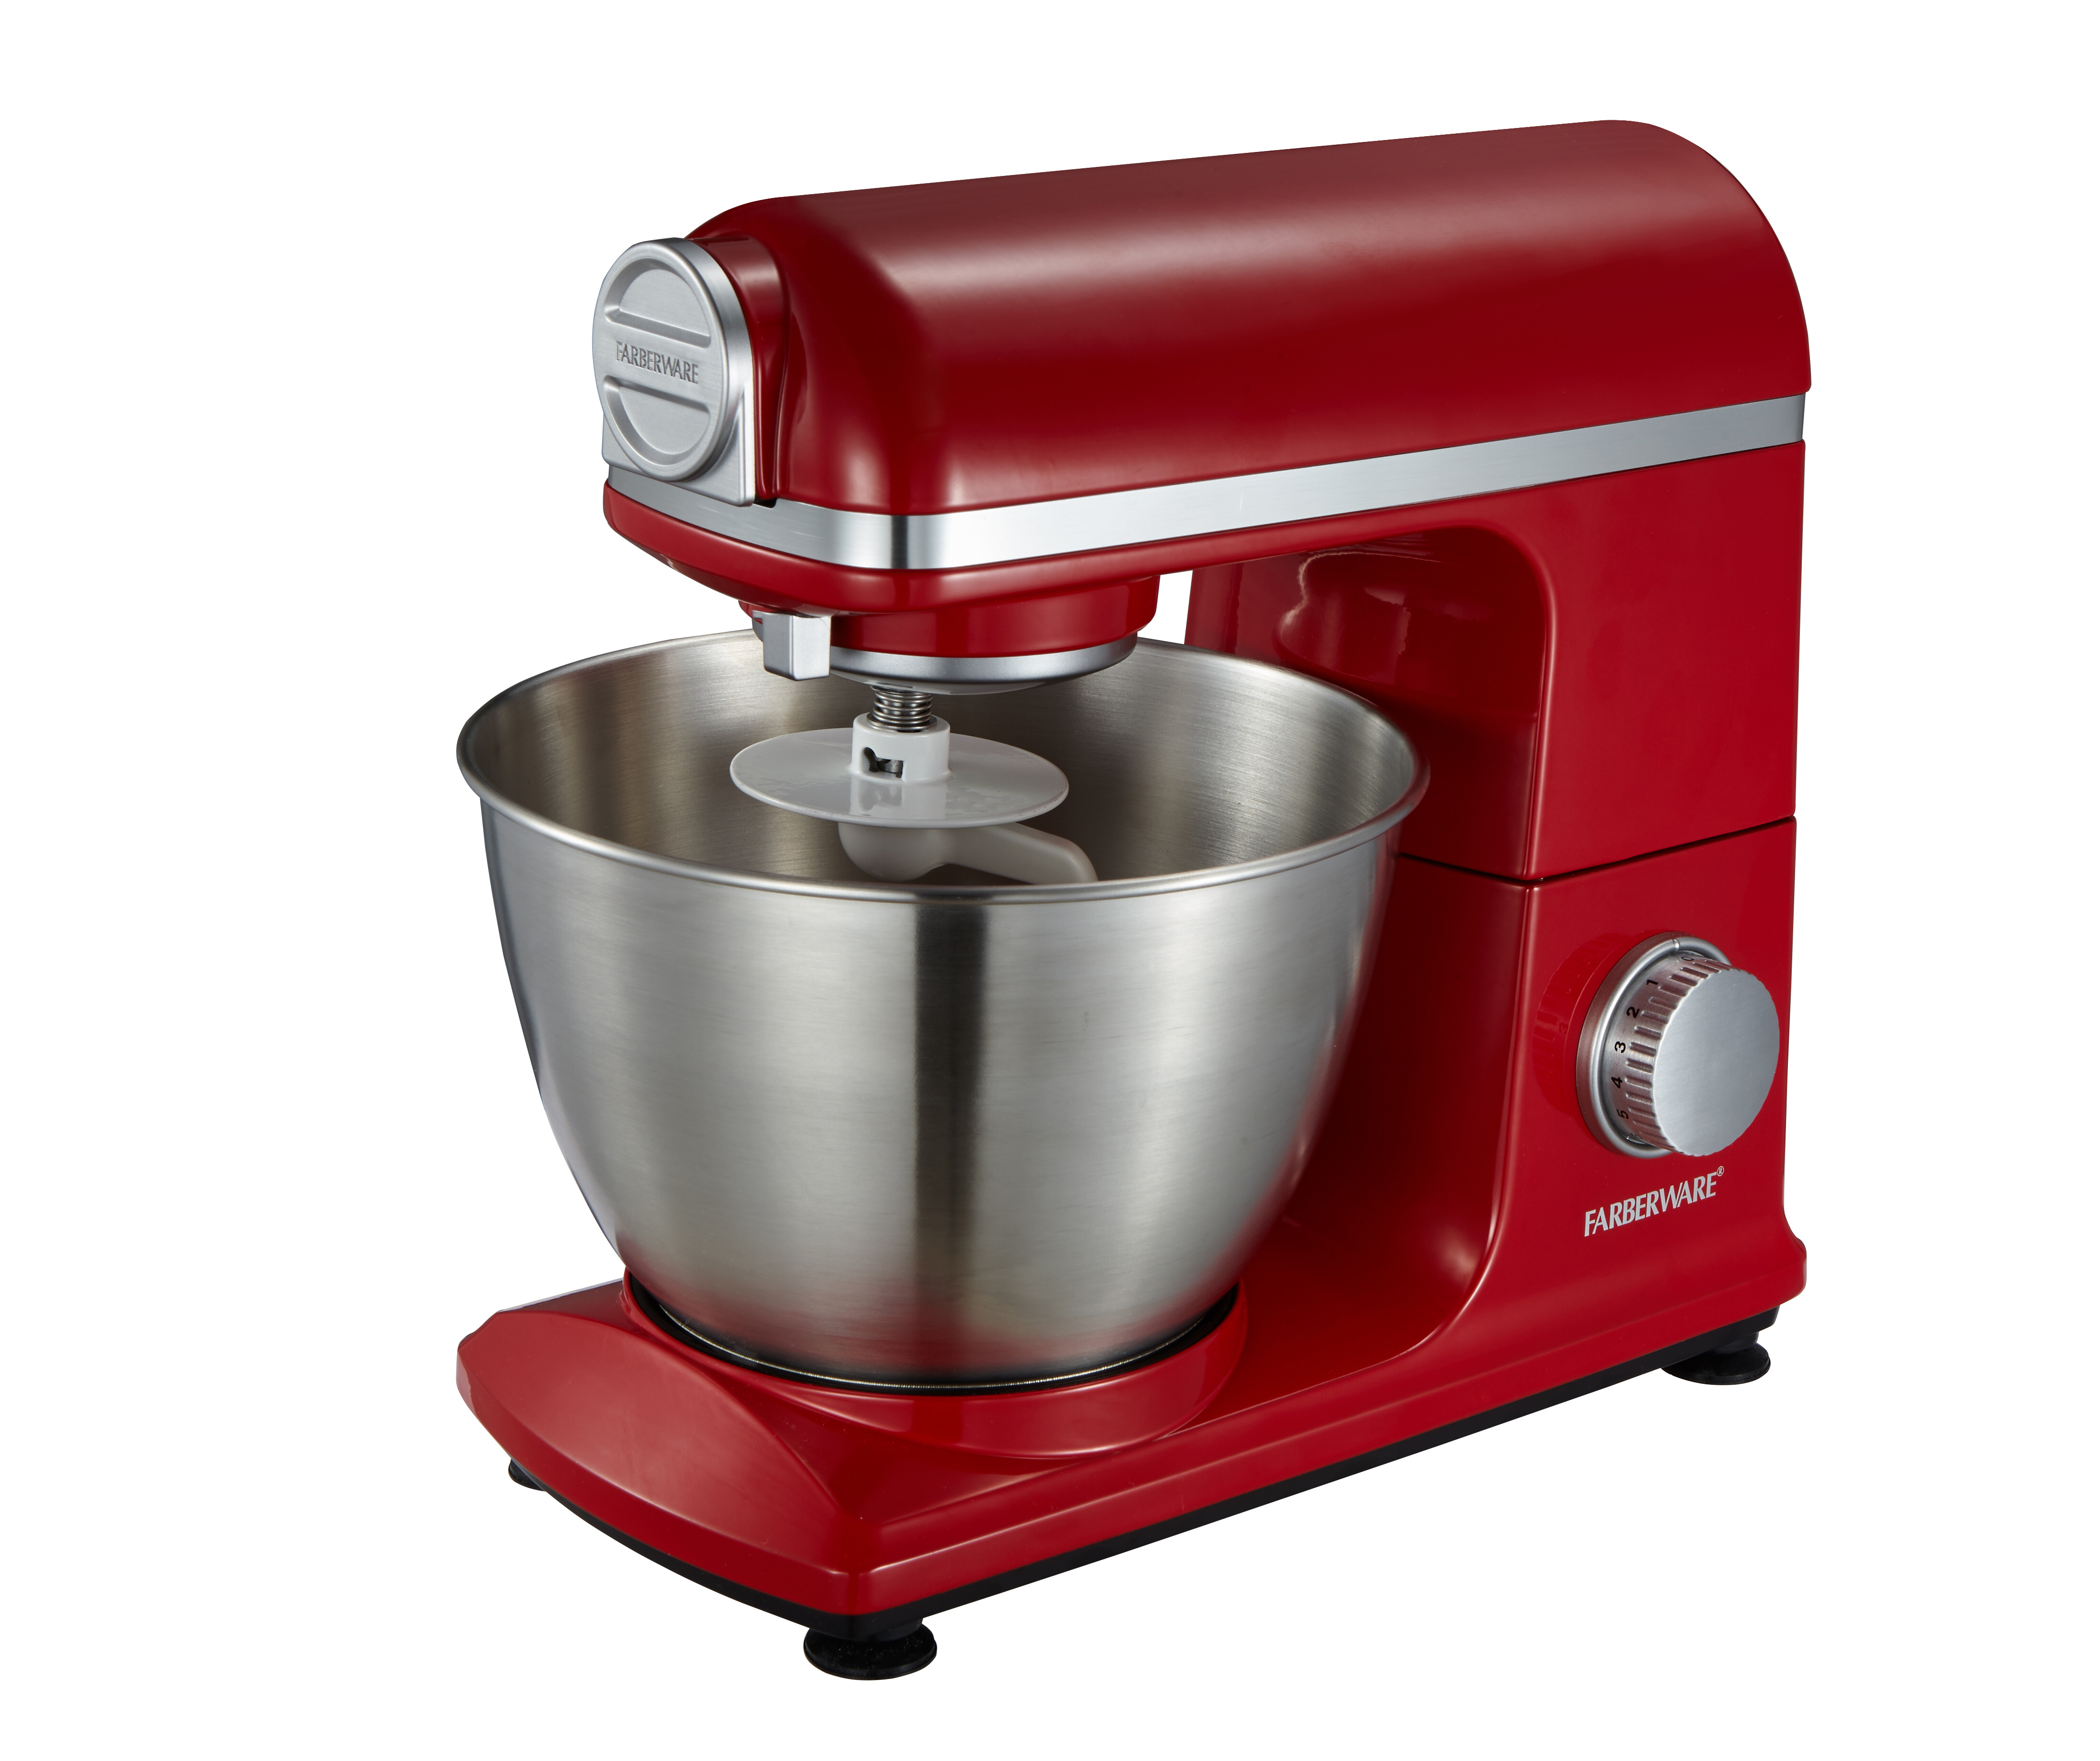 Farberware 4.7 Qt. Stand Mixer, Red (SM3481R4)